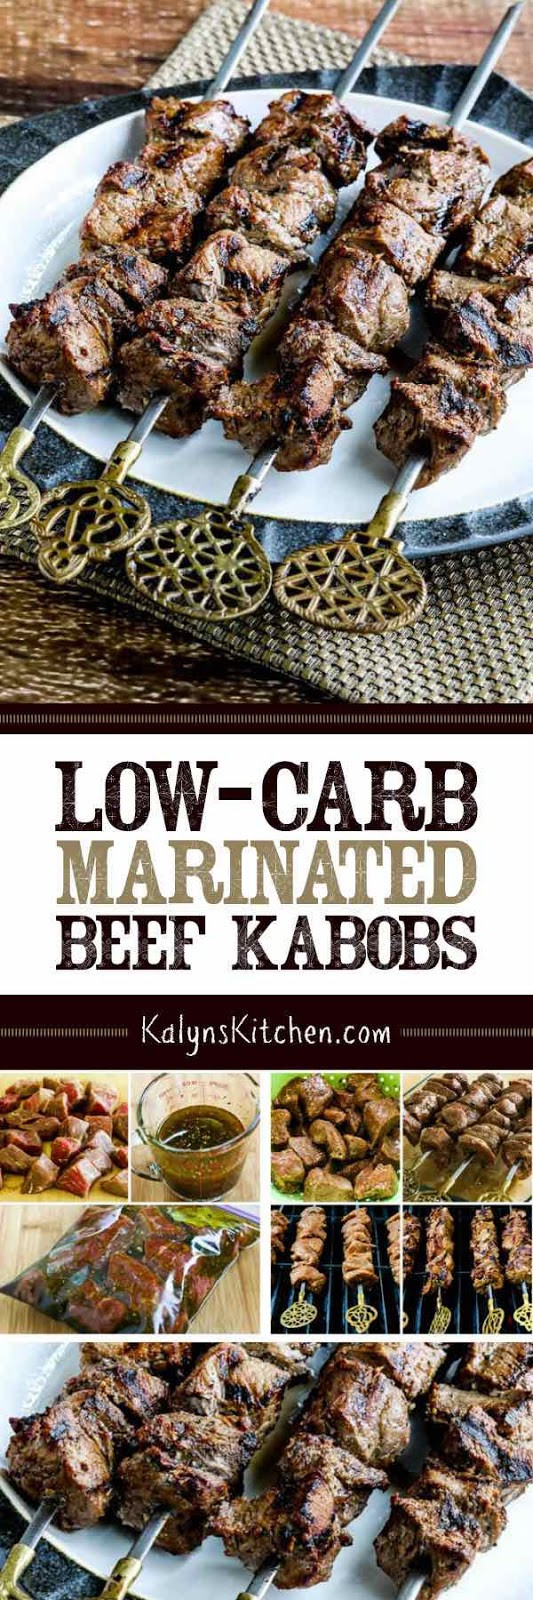 Low Carb Marinades  Low Carb Marinated Beef Kabobs Kalyn s Kitchen